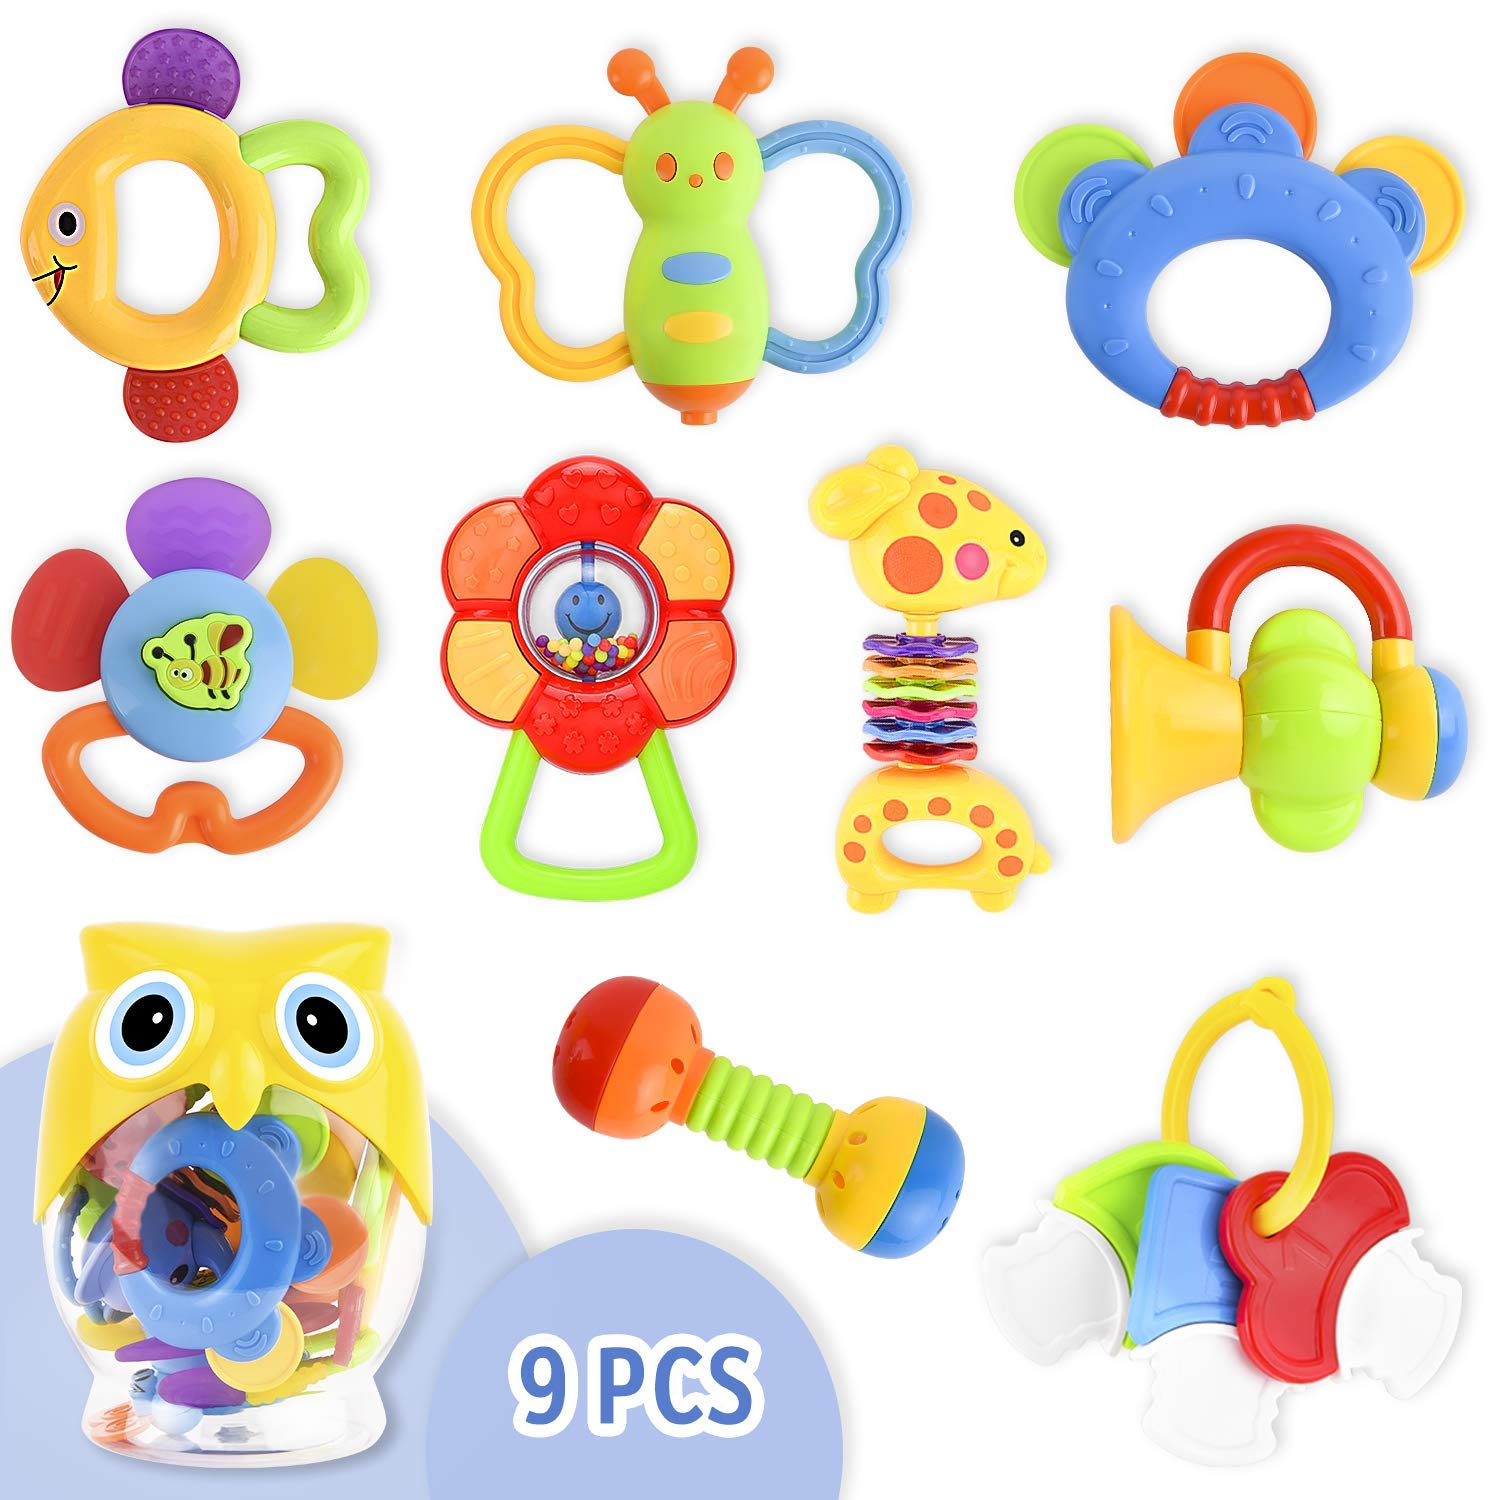 Baby rattle and teether clipart image free library 9 Pcs Toys for Infants Baby Rattle Teether Toy Set, Baby Mouth Toys Shake  and Grab Rattle Musical Toys with Owl Storage Bottle Baby First Rattle and  ... image free library